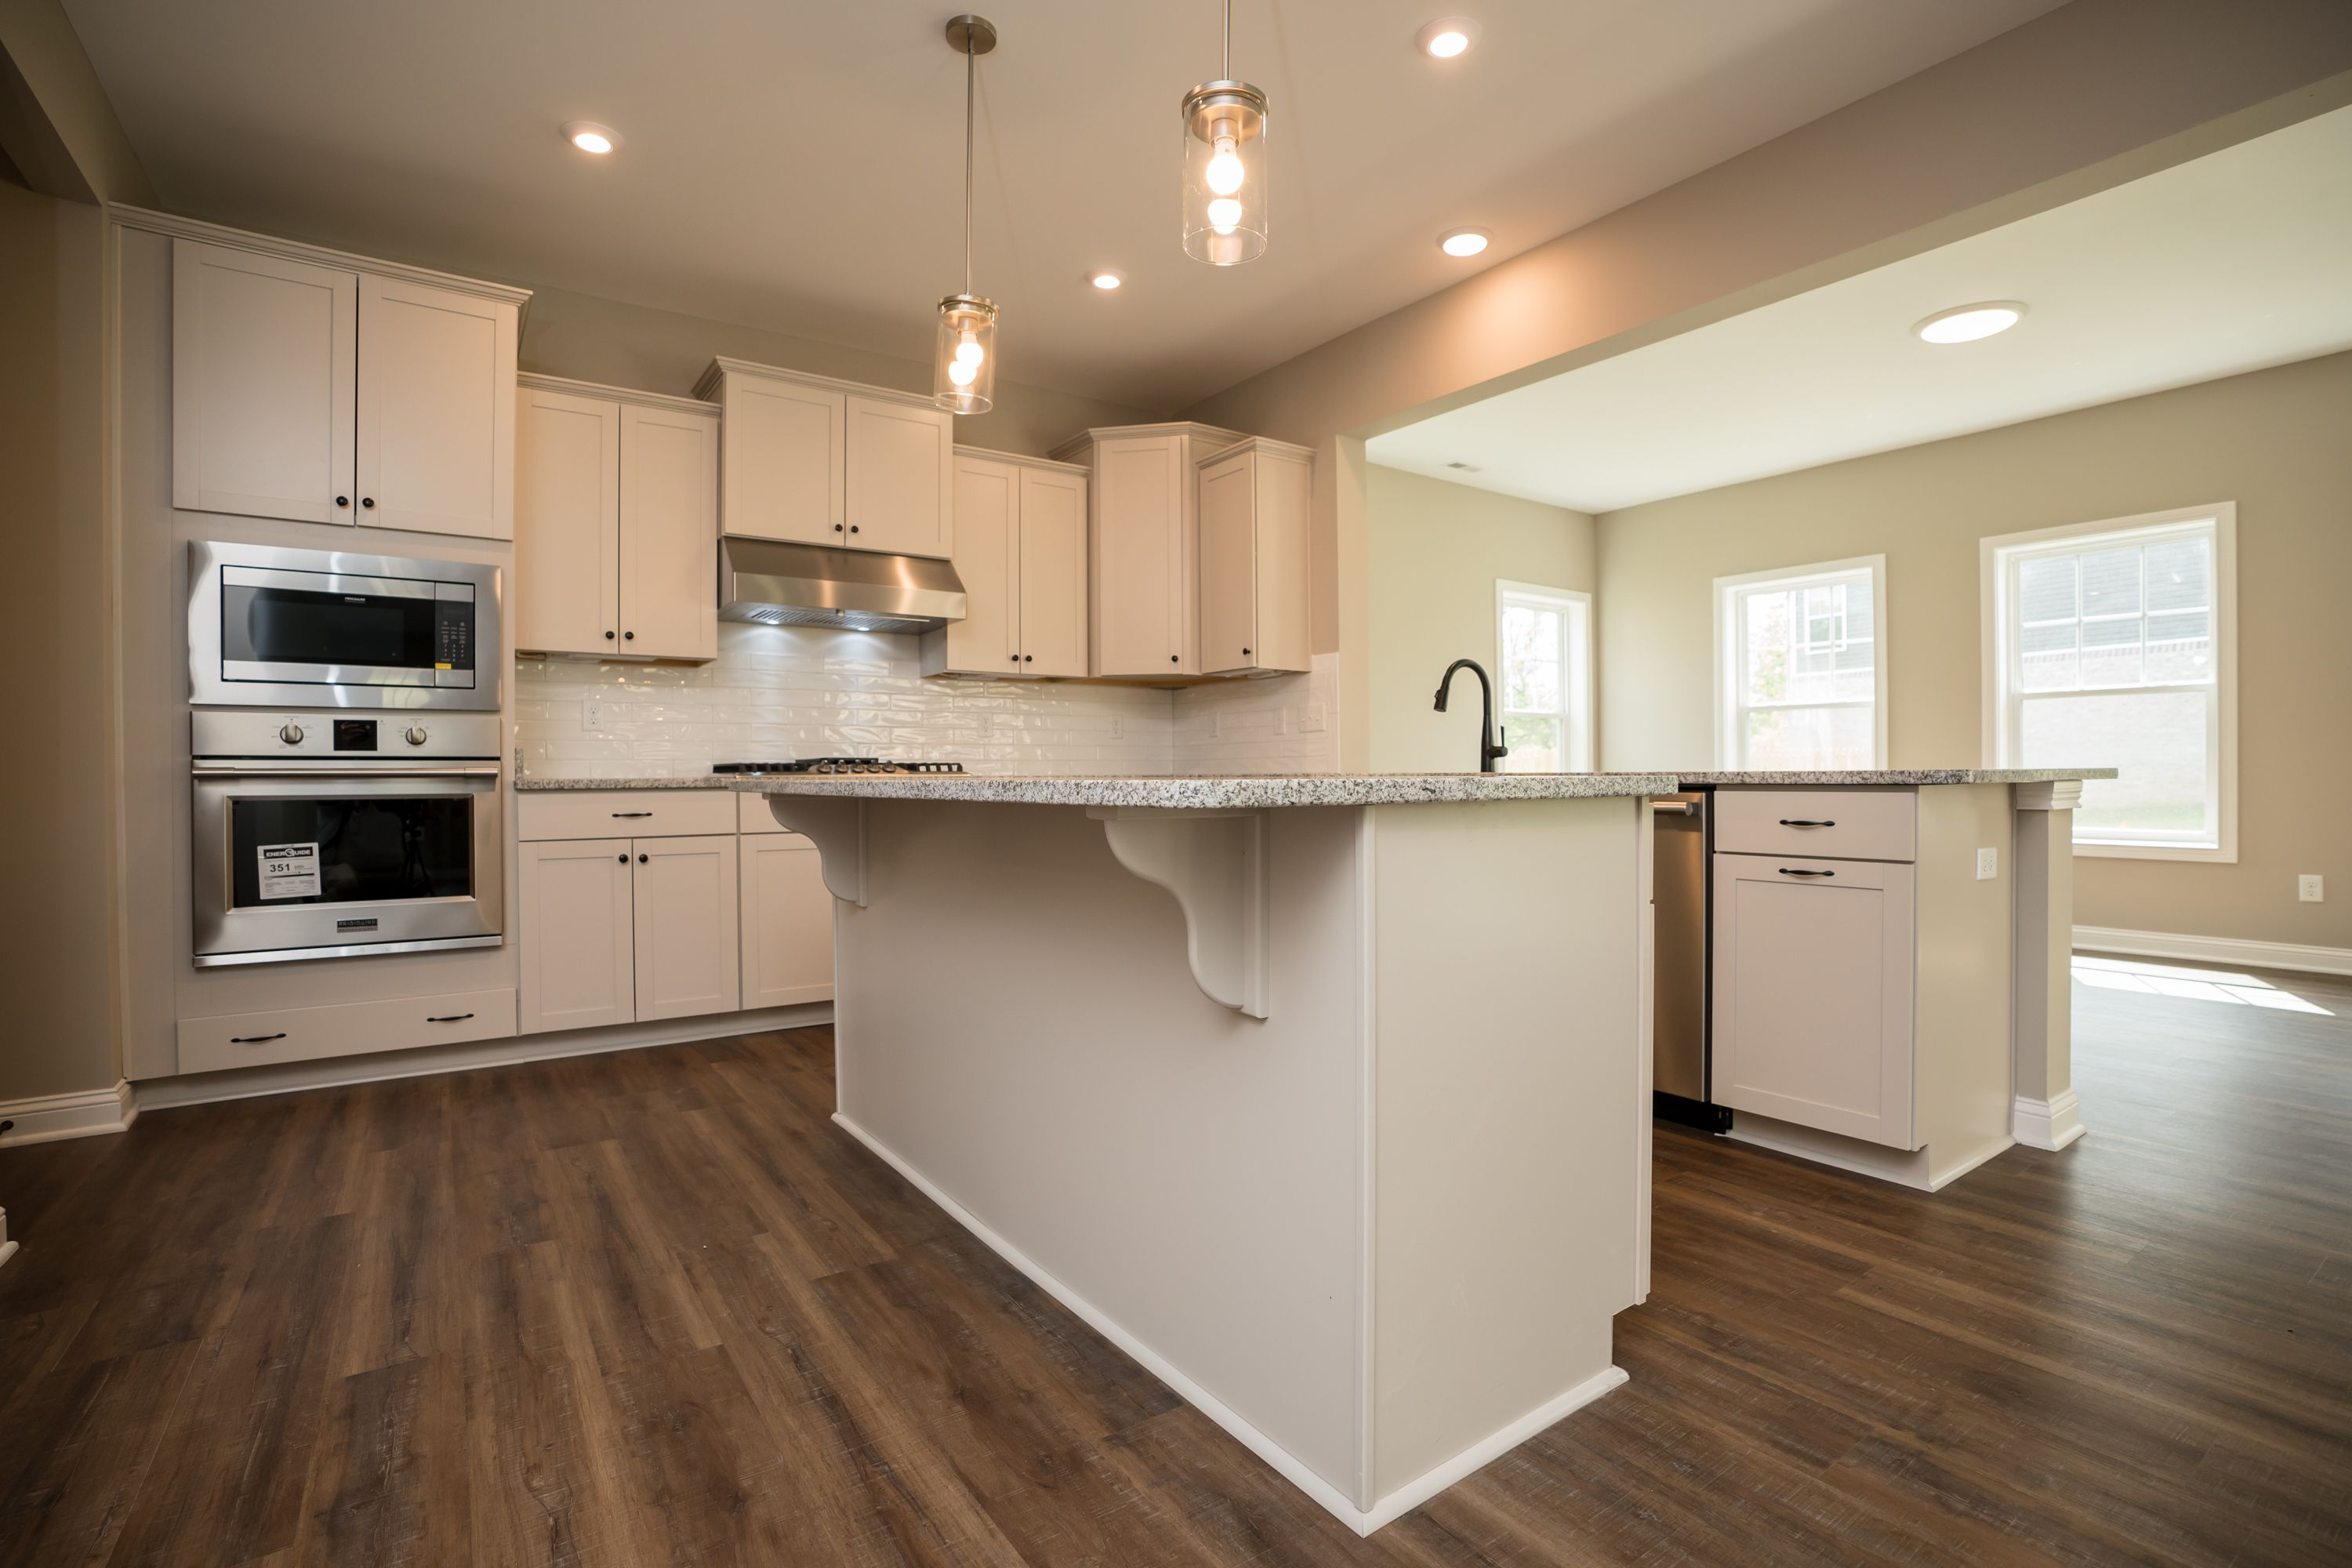 Kitchen featured in The Abigail  By James Monroe Homes in Lexington, KY